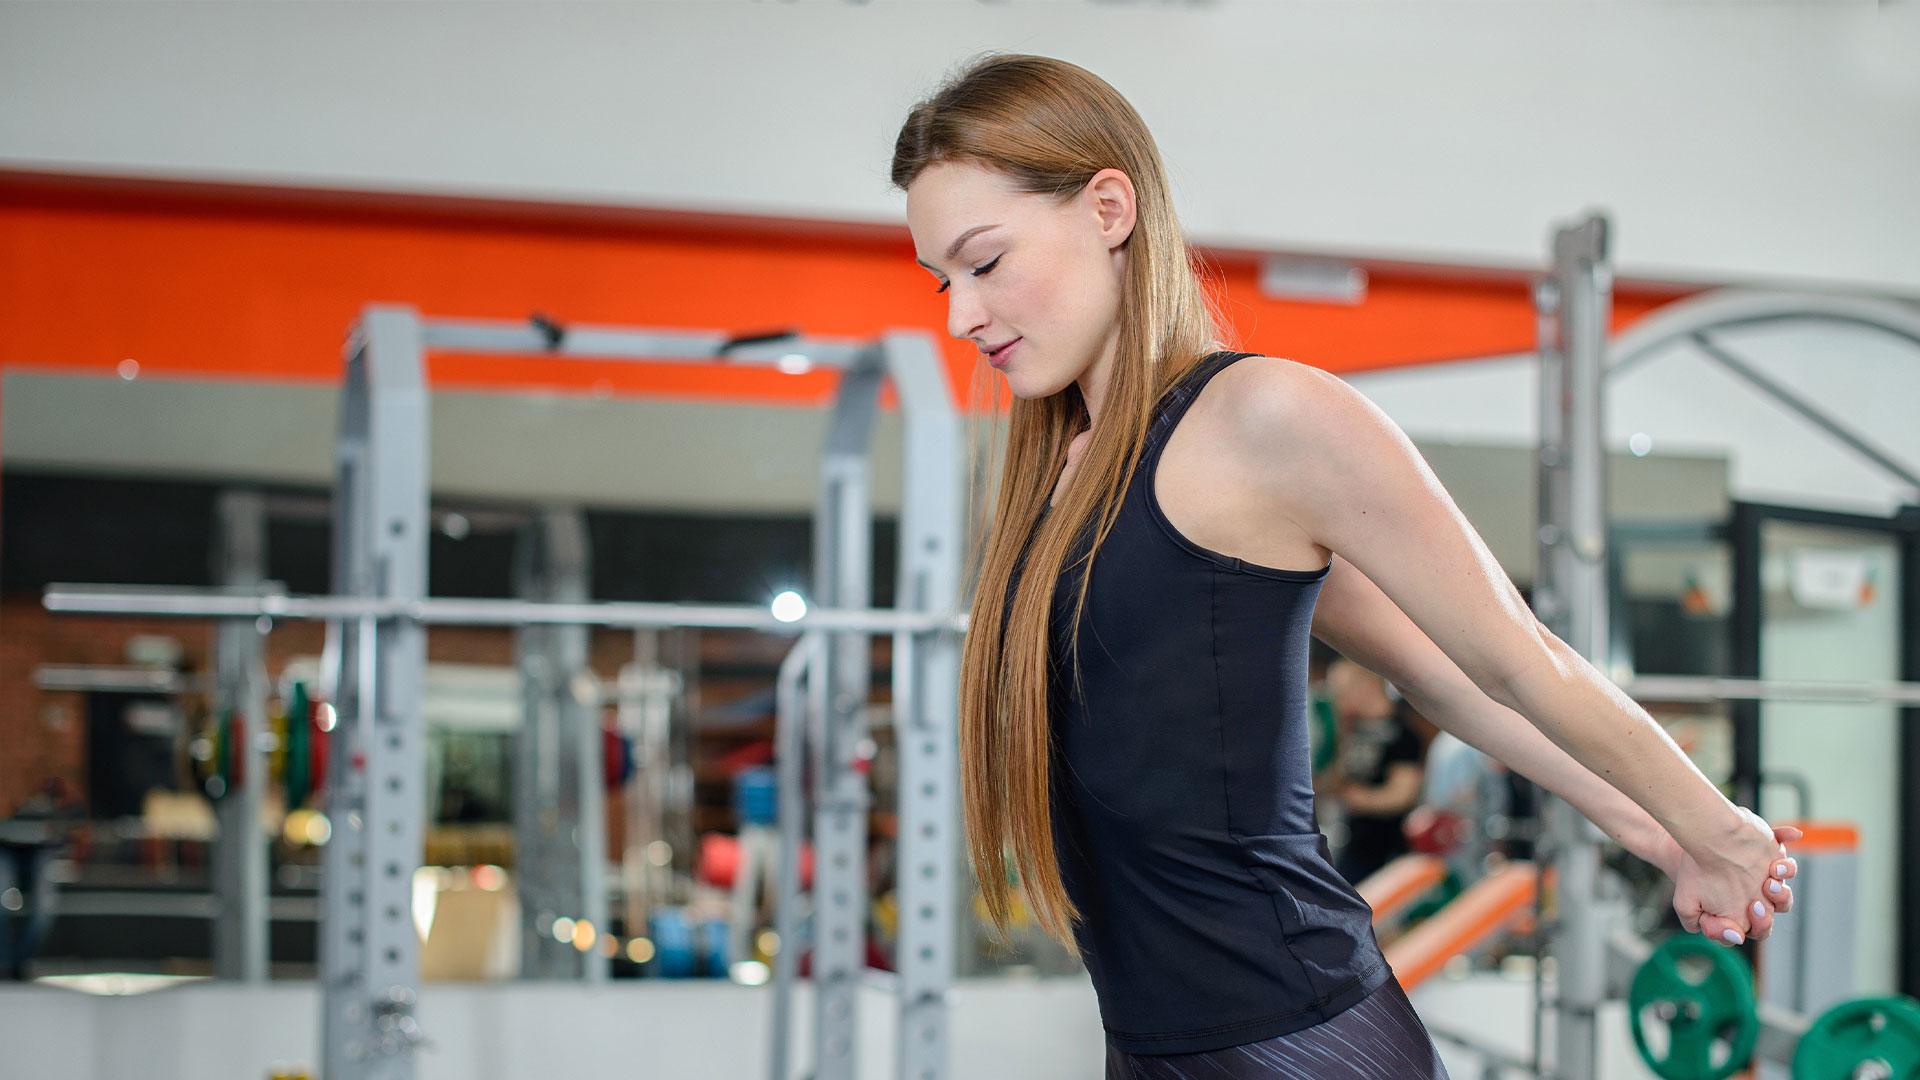 Woman at the gym stretches her chest with her arms extended and hands clasped behind her.